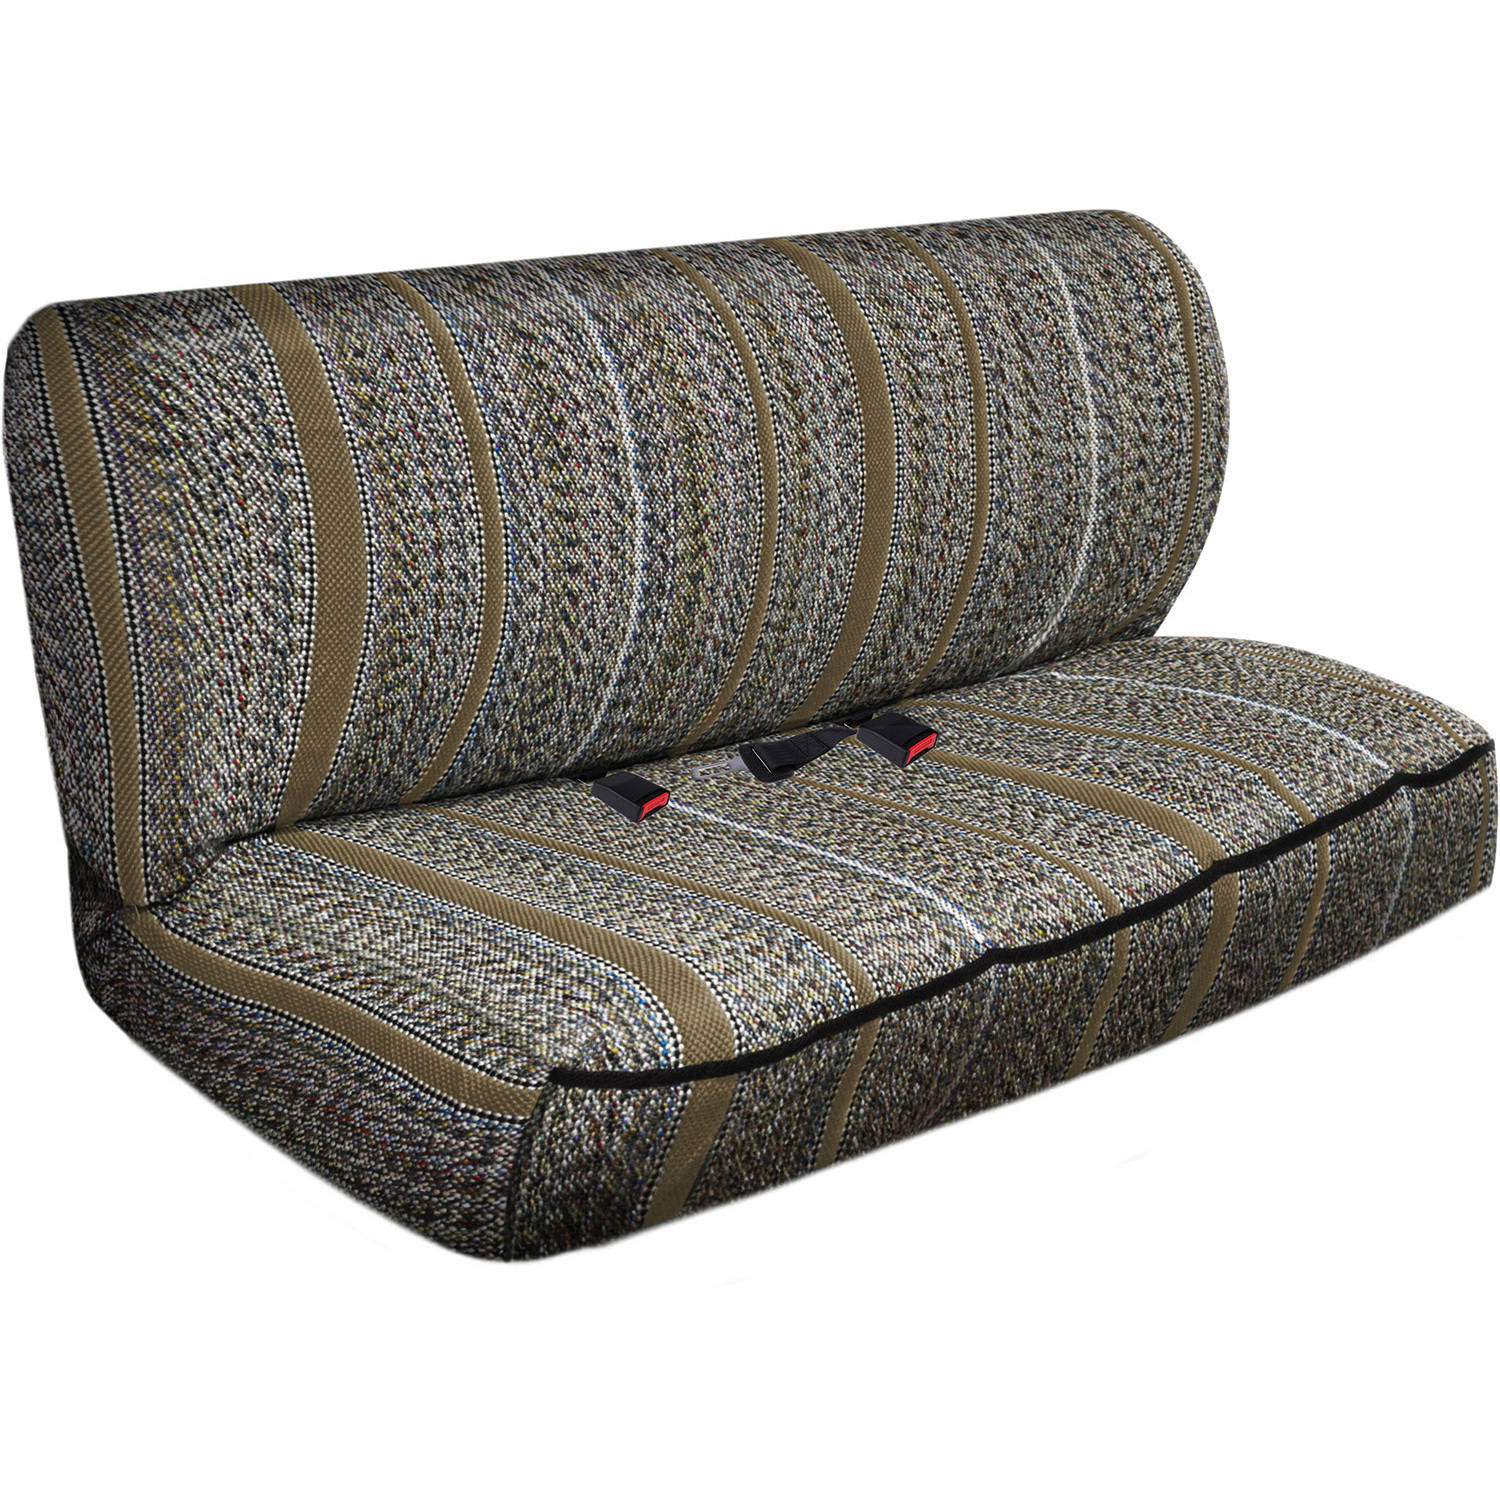 OxGord 2-Piece Full Size Heavy Duty Saddle Blanket Bench Seat Covers, Tan